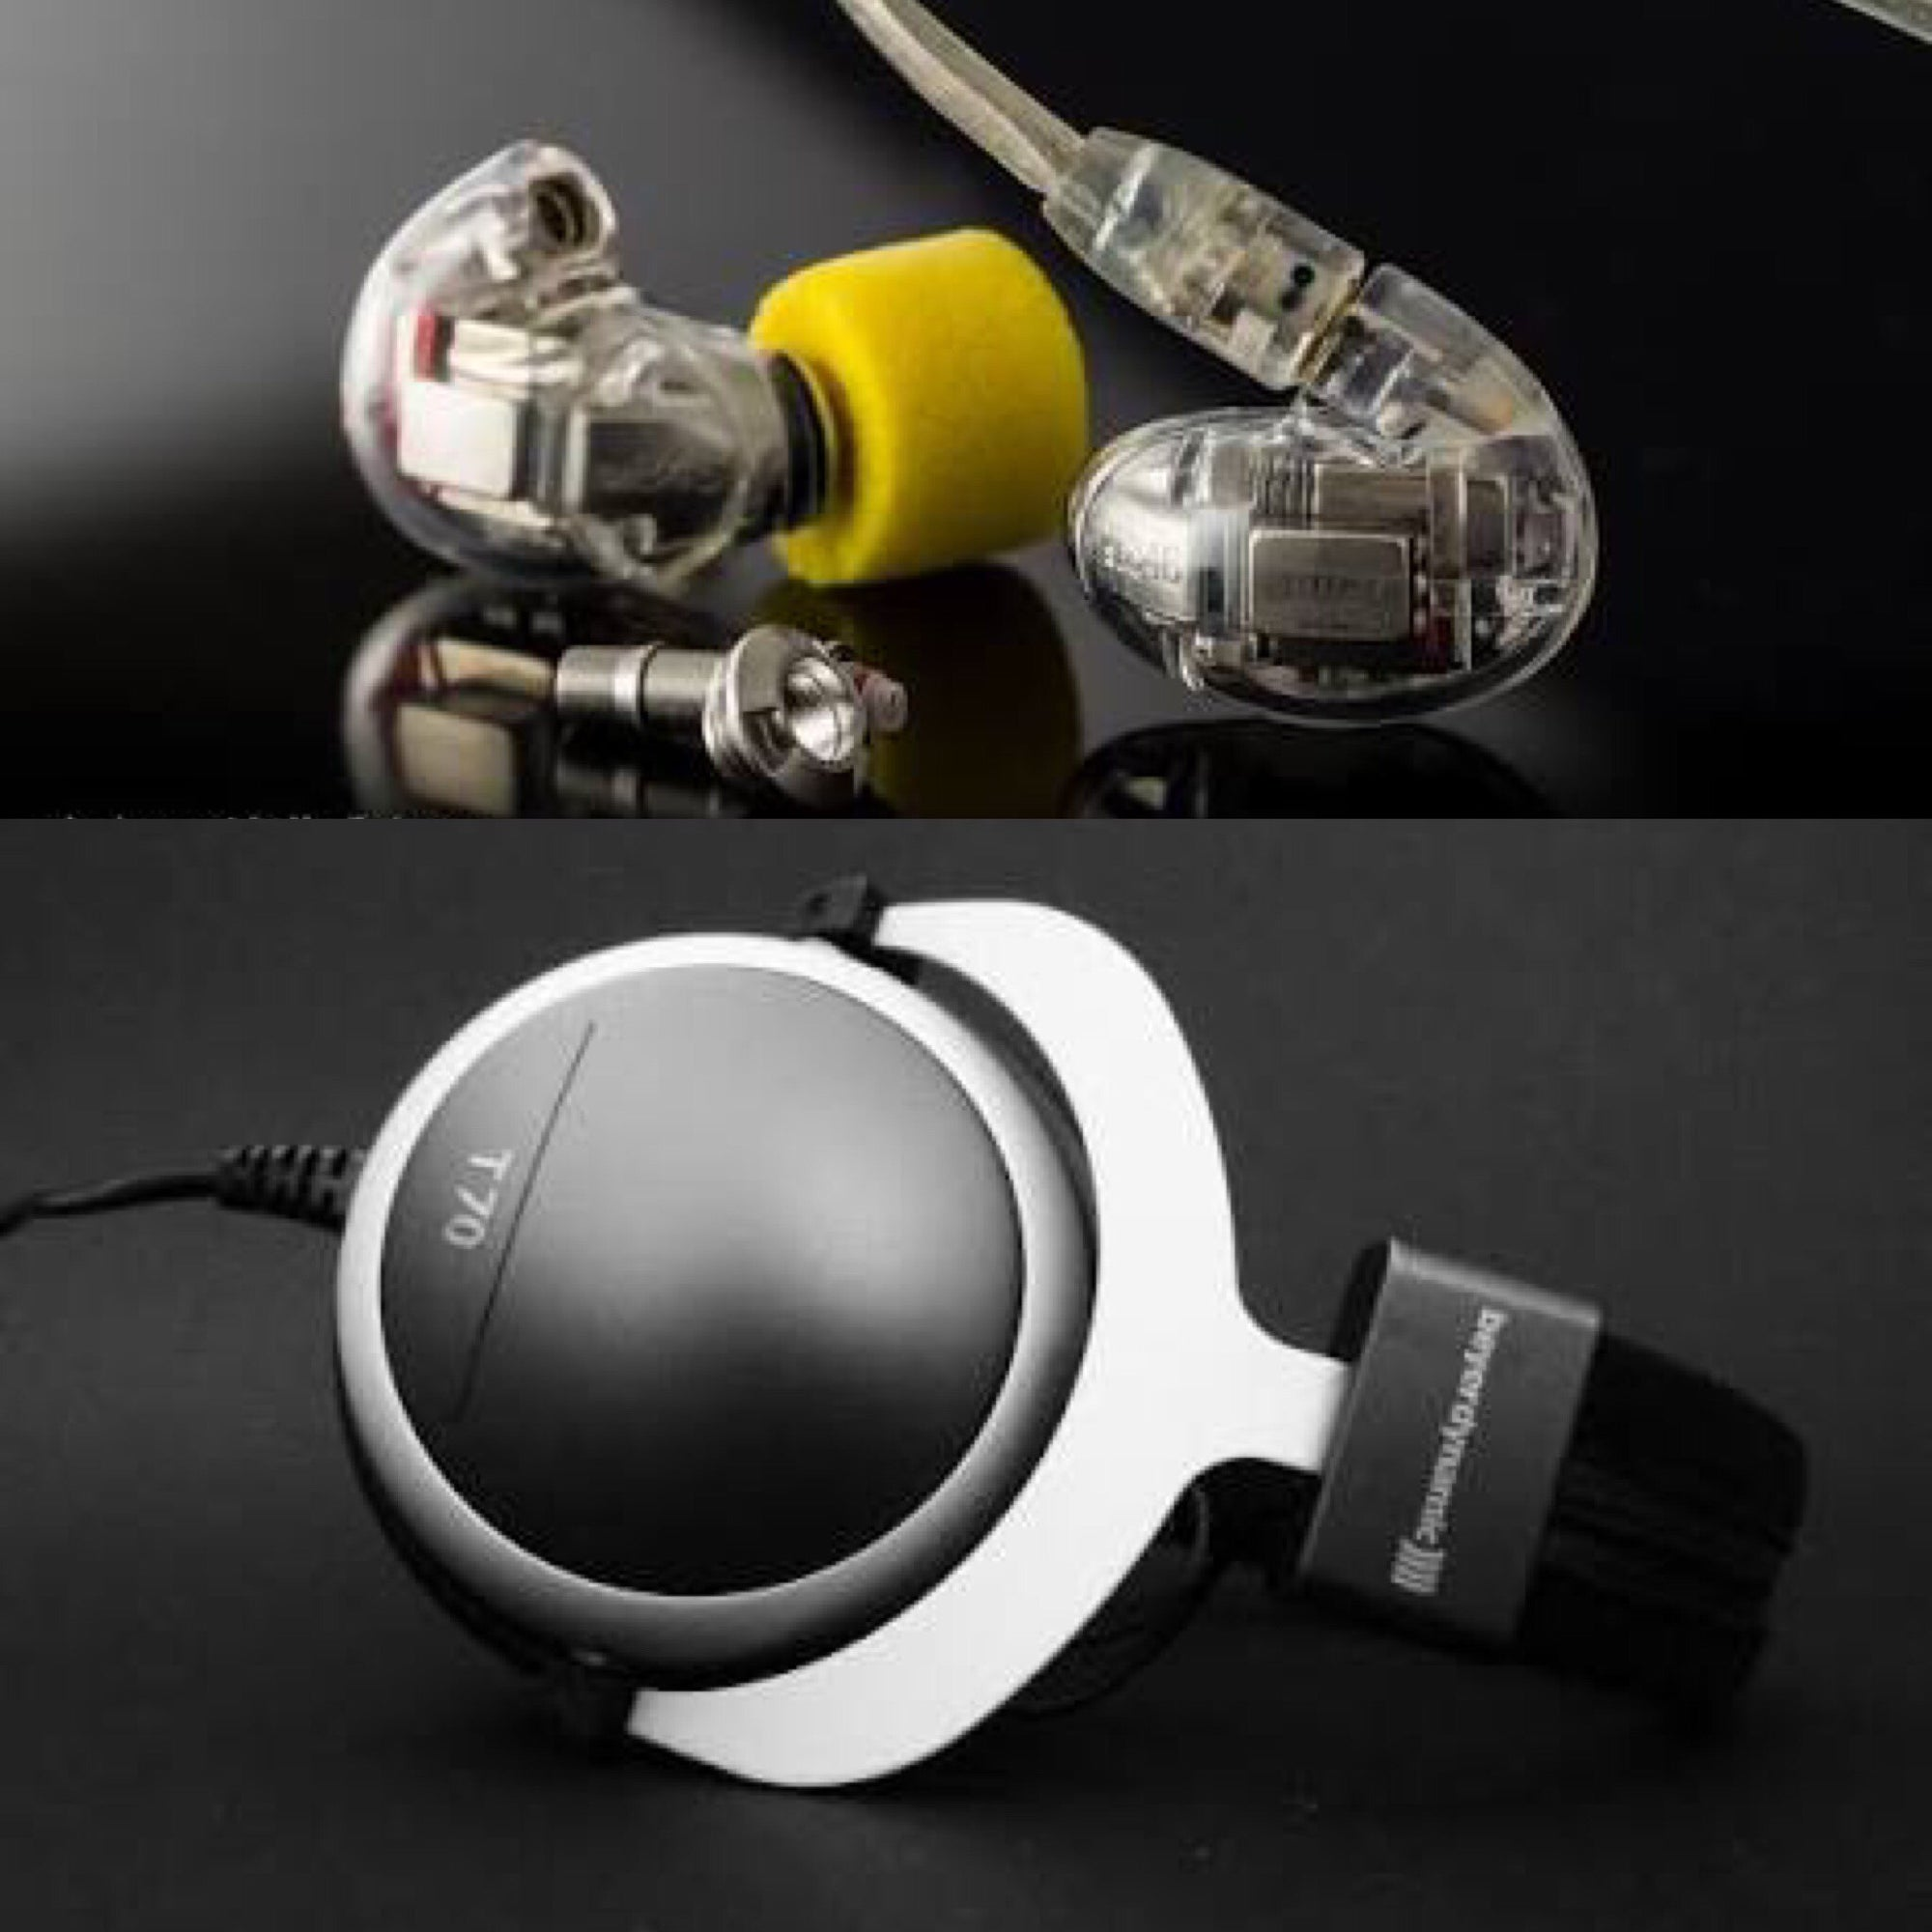 [JABEN COMBO] Shure SE846 Quad Driver In-ear Monitor + Beyerdynamic T70 Headphone